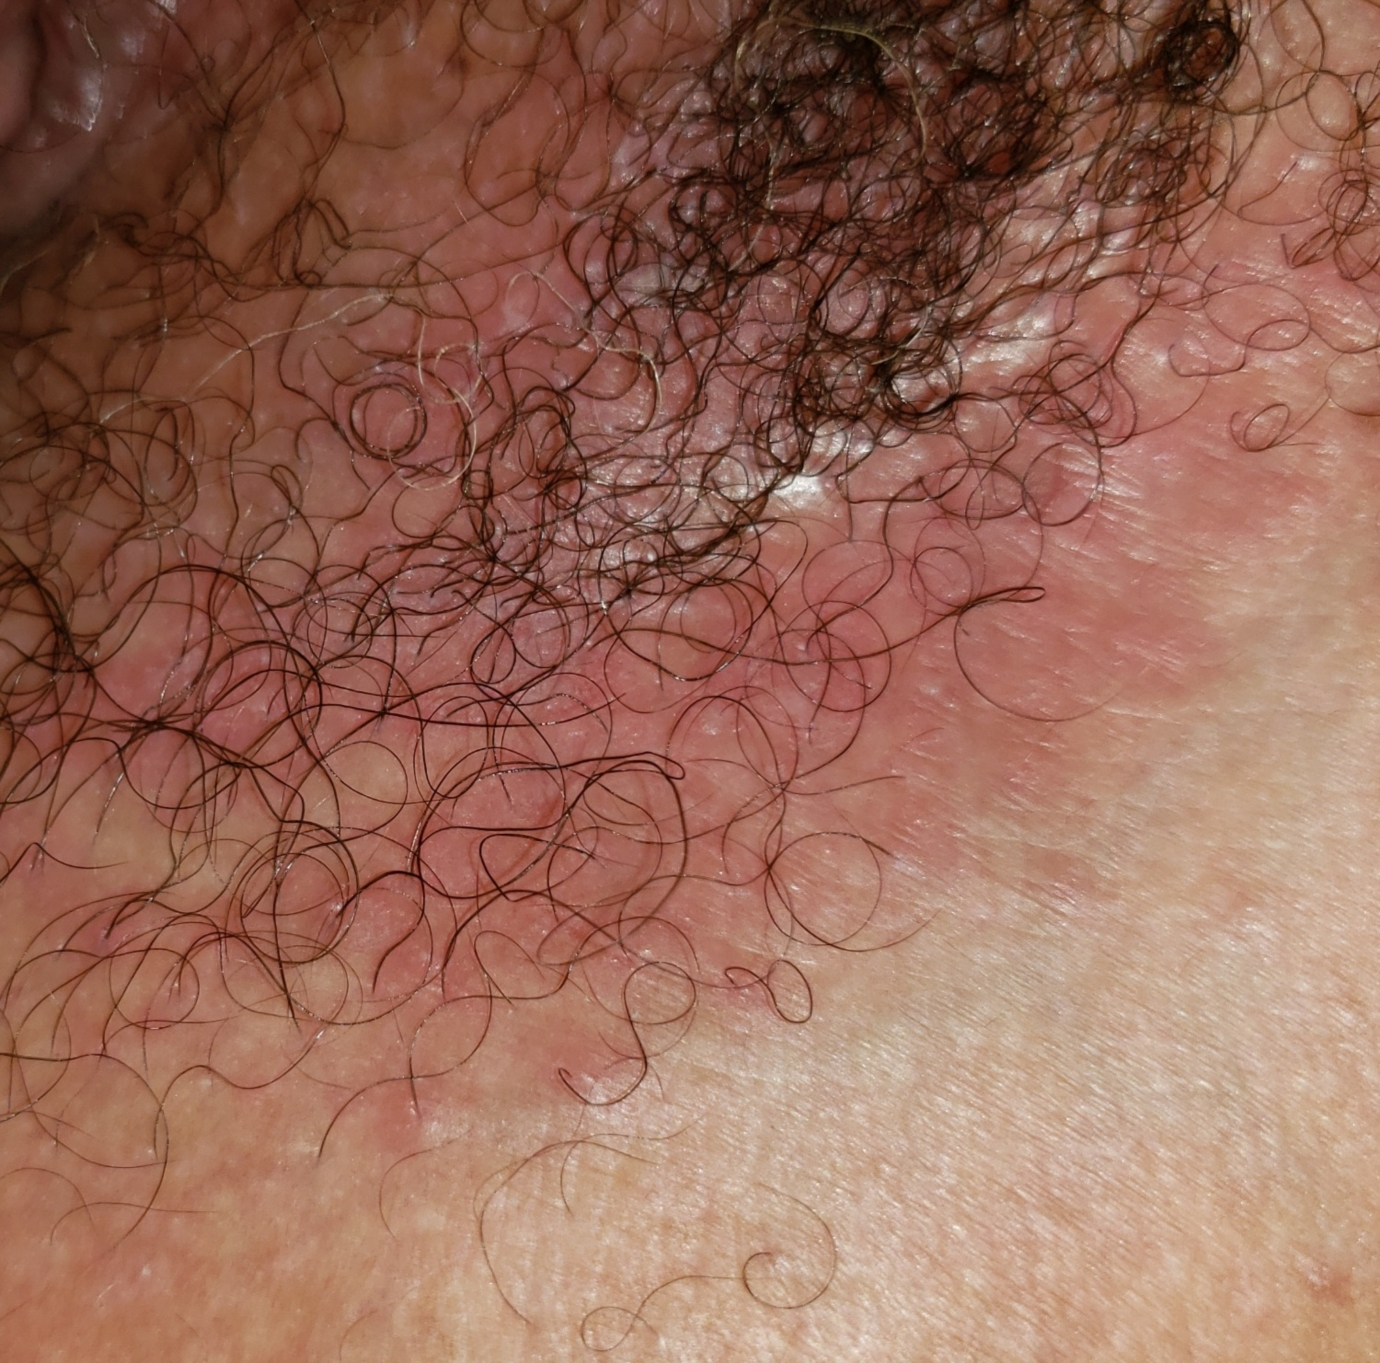 Painless rash/blisters - what does this look like